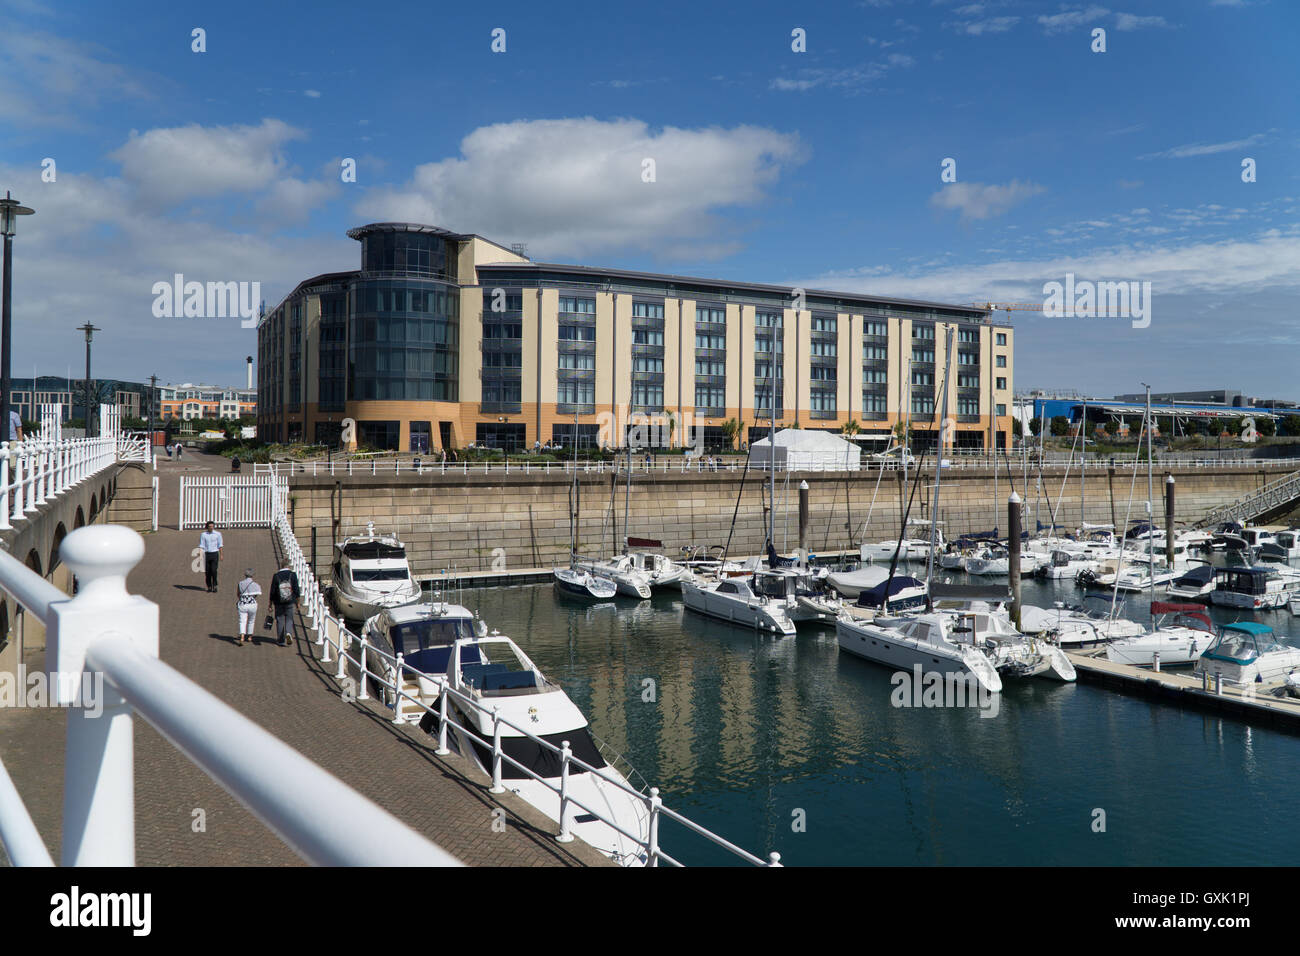 Radisson Blu Hotel located at the Waterfront,Jersey,Channel Islands, - Stock Image